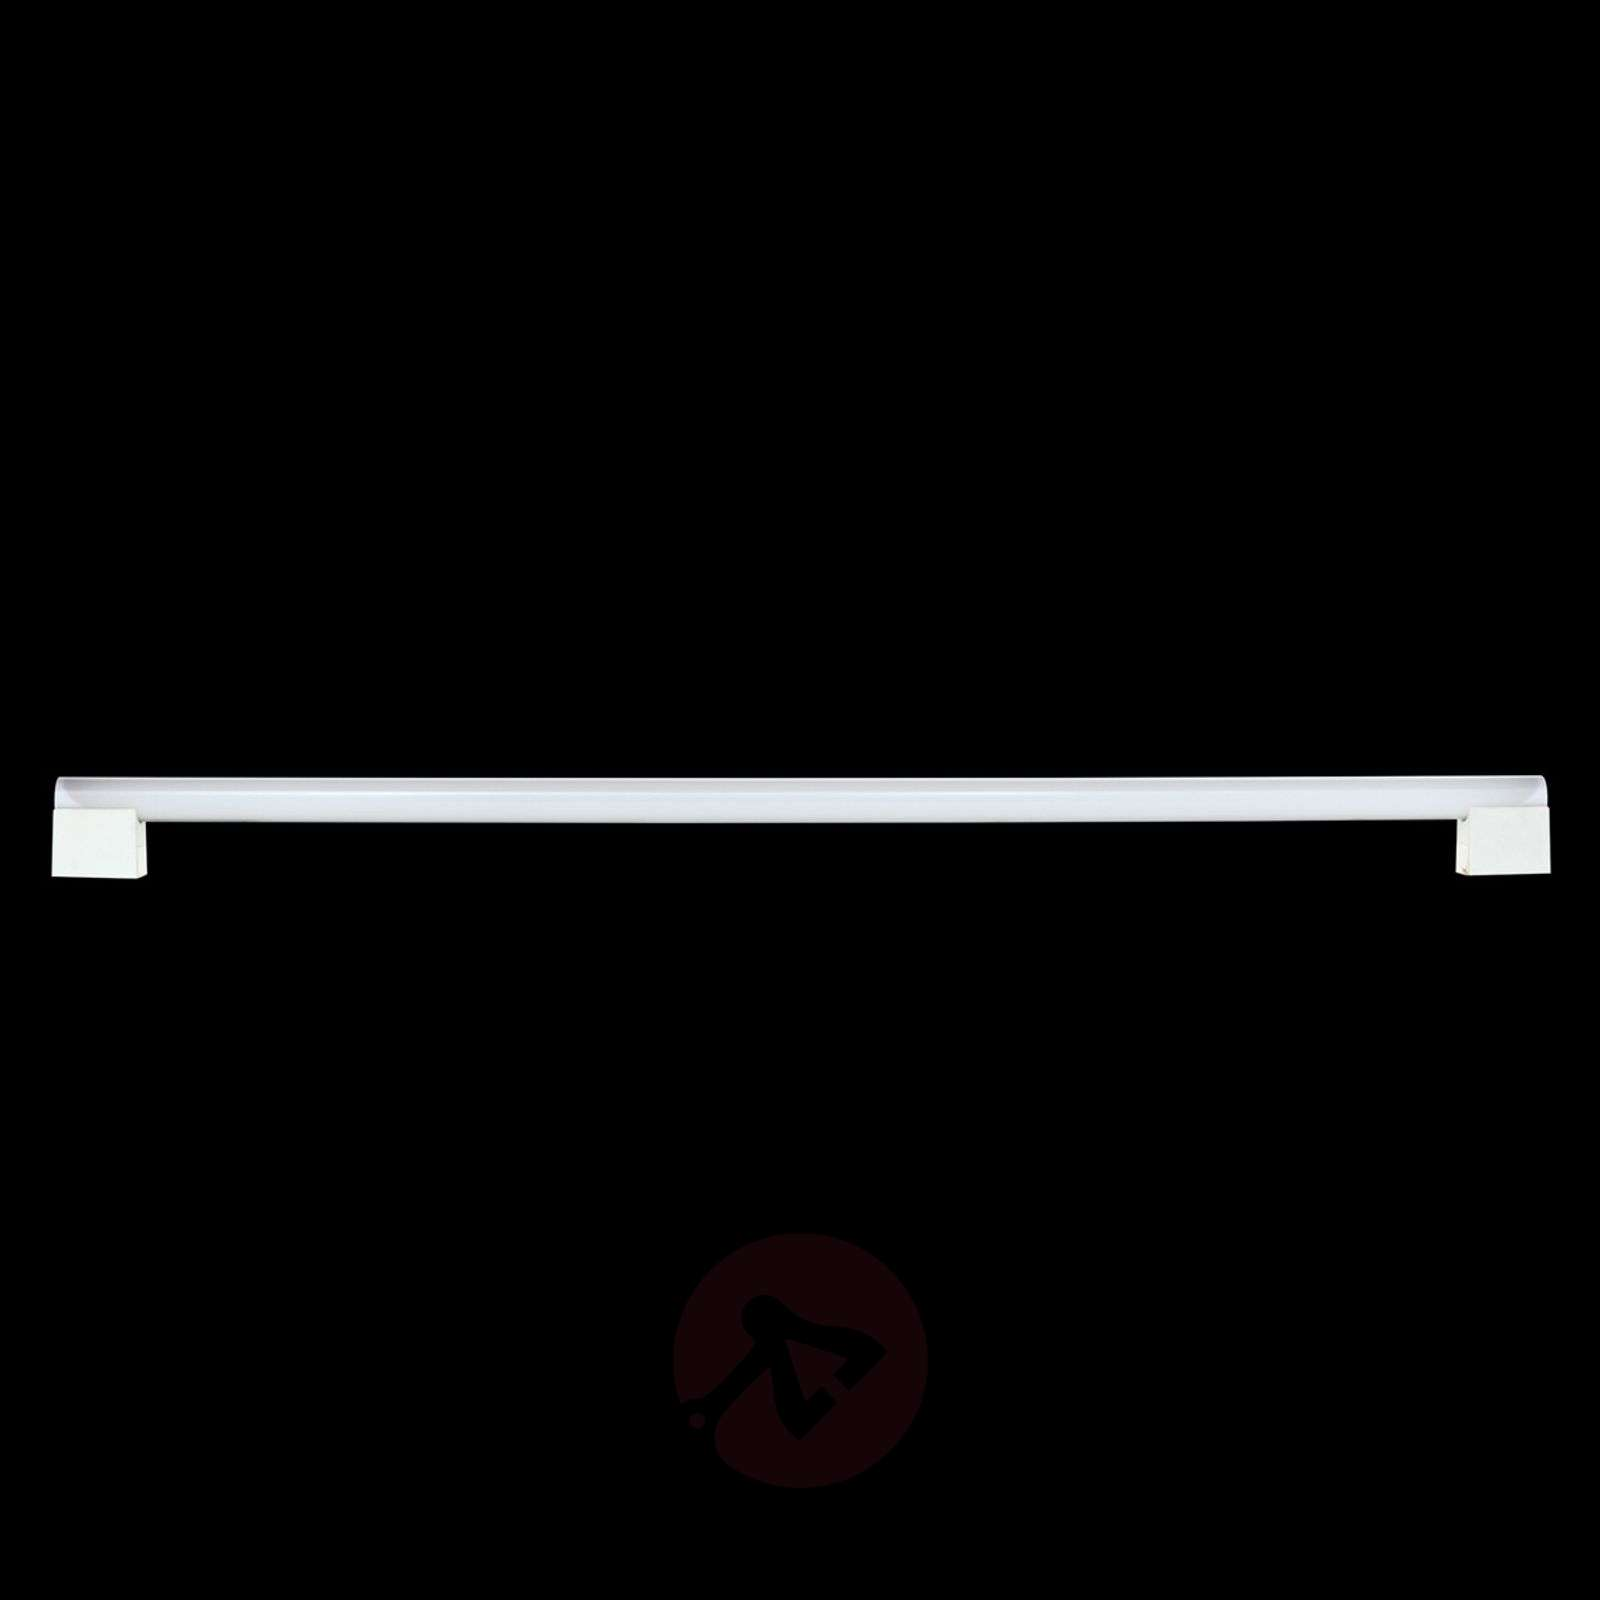 Bombilla linear LED S14s 16 W 827-7255108-01